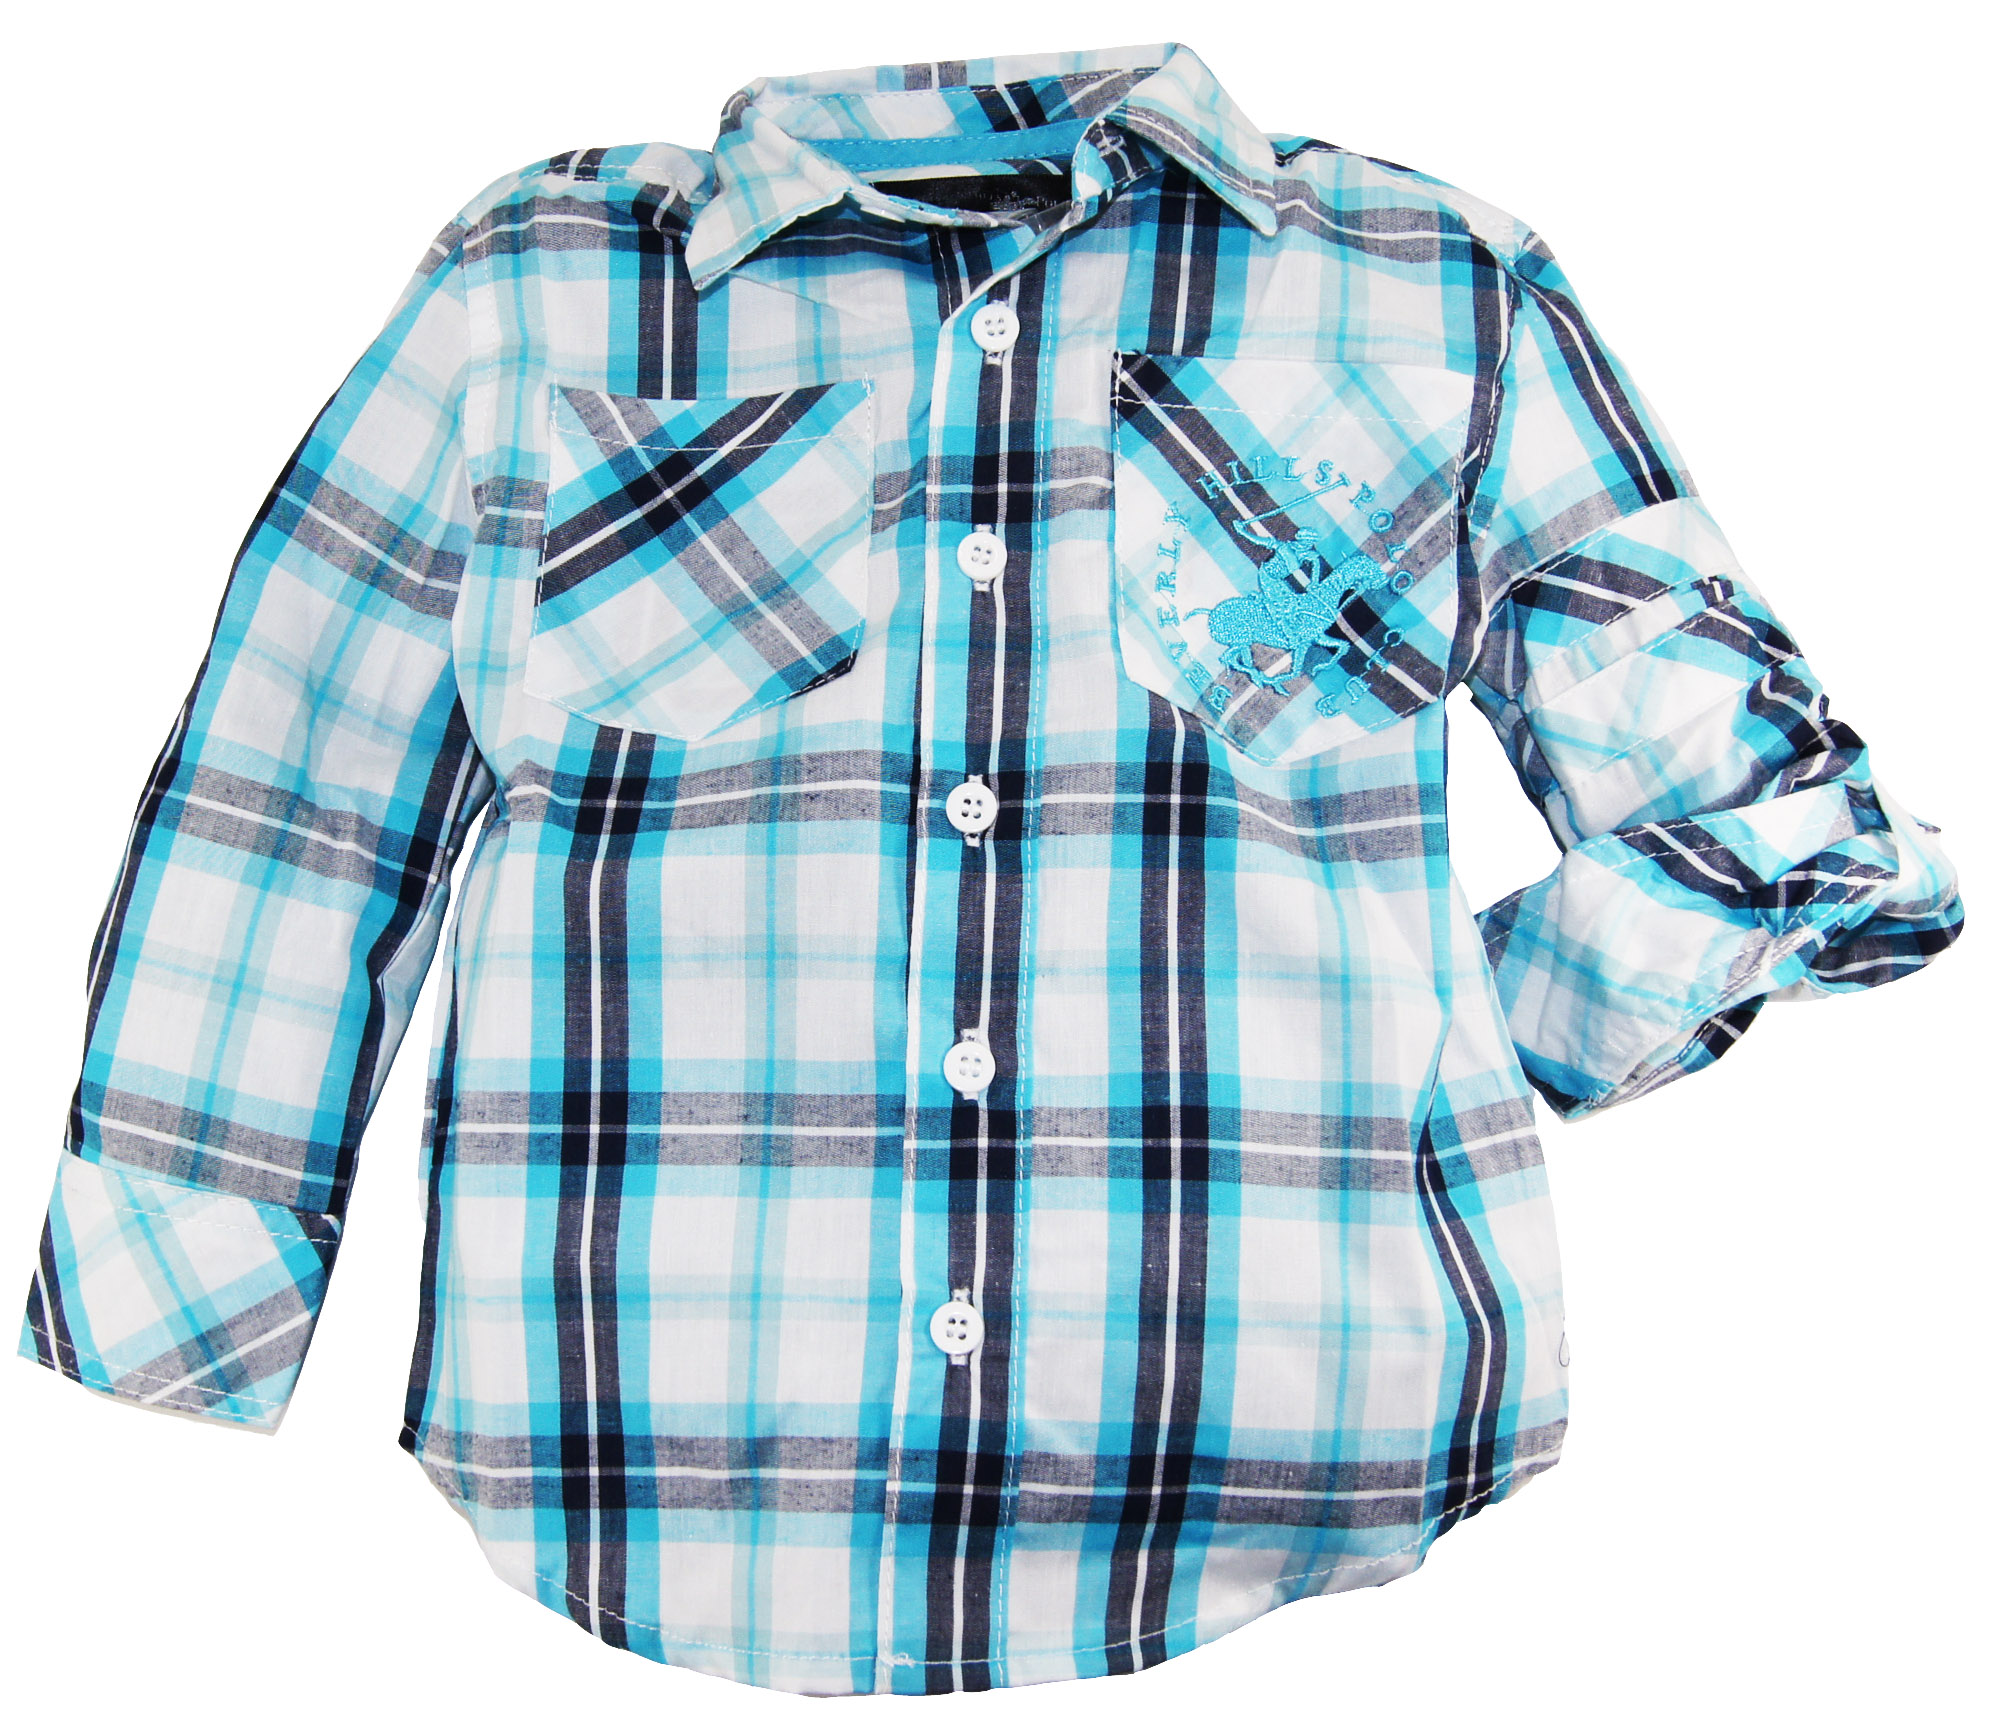 Beverly Hills Polo Club Beverly Hills Polo Boys Blue Atoll Plaid Long Sleeve Shirt at Sears.com